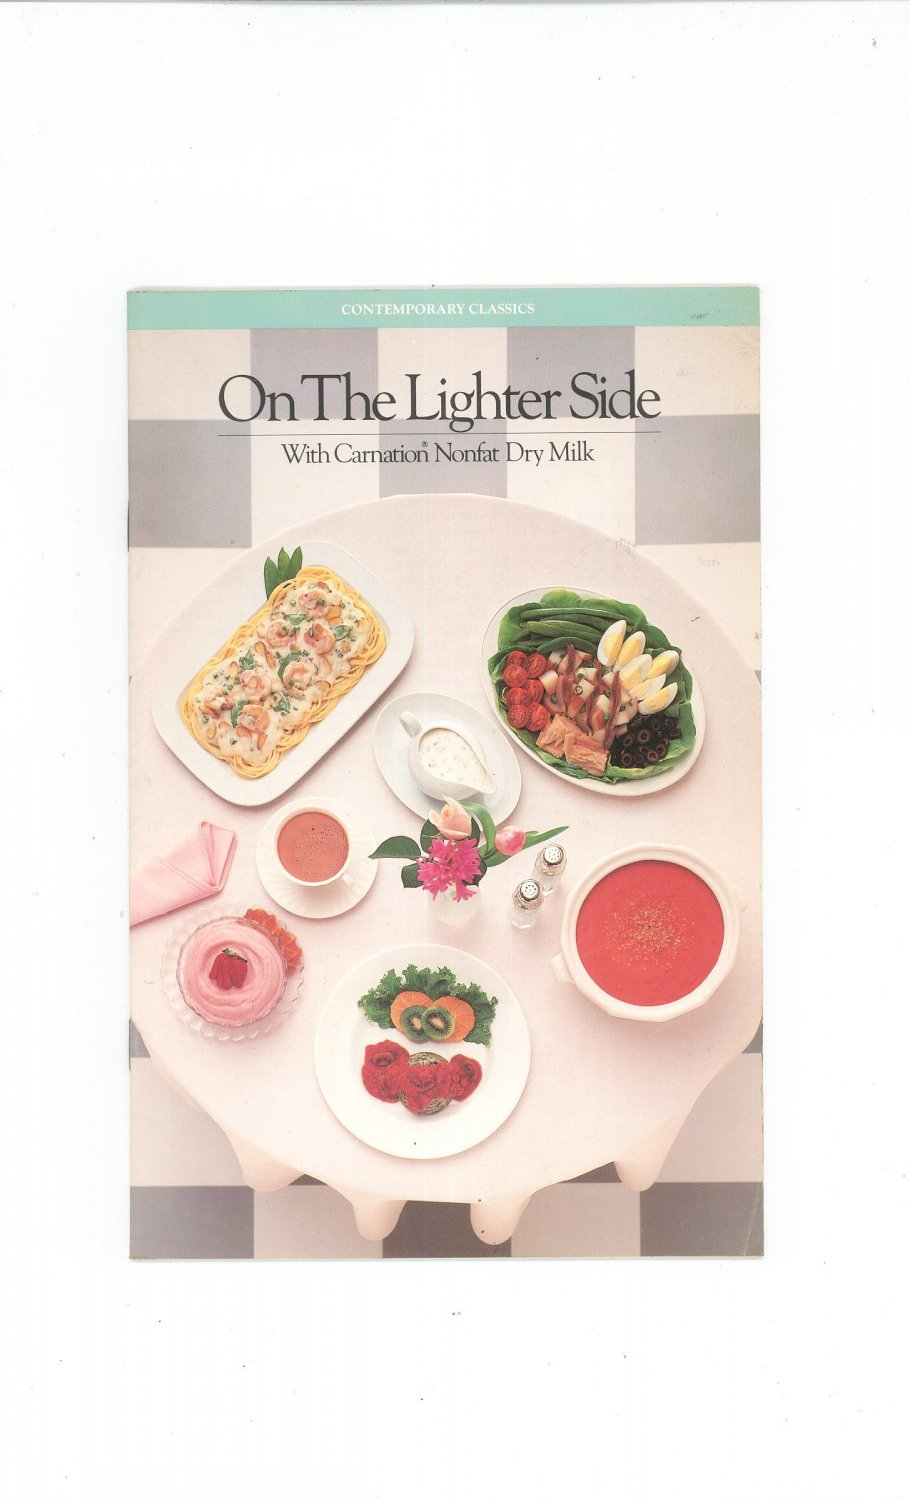 On The Lighter Side Cookbook by Carnation Nonfat Dry Milk 1985